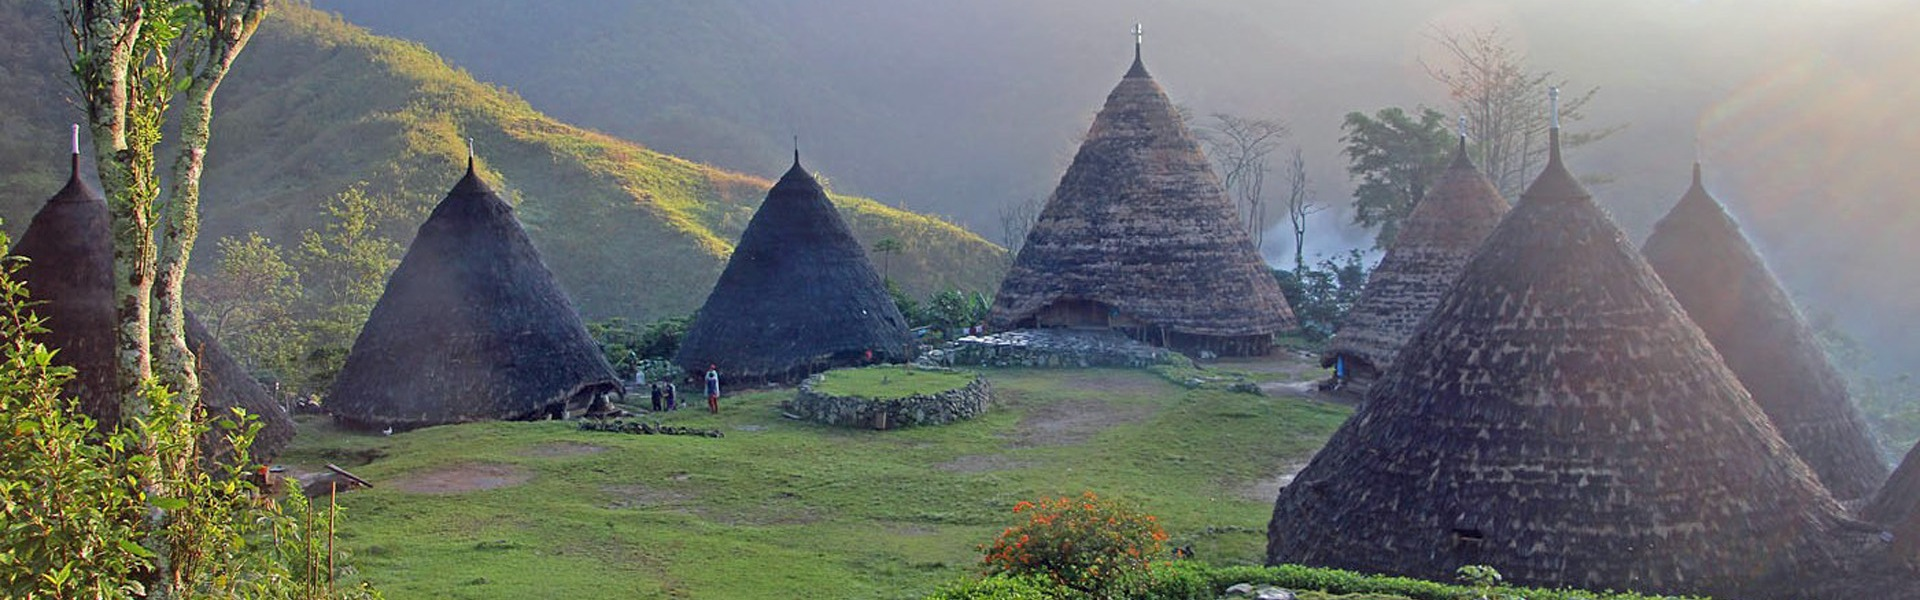 Wae Rebo traditional Manggarraian village in the central highlands of Flores, Indonesia